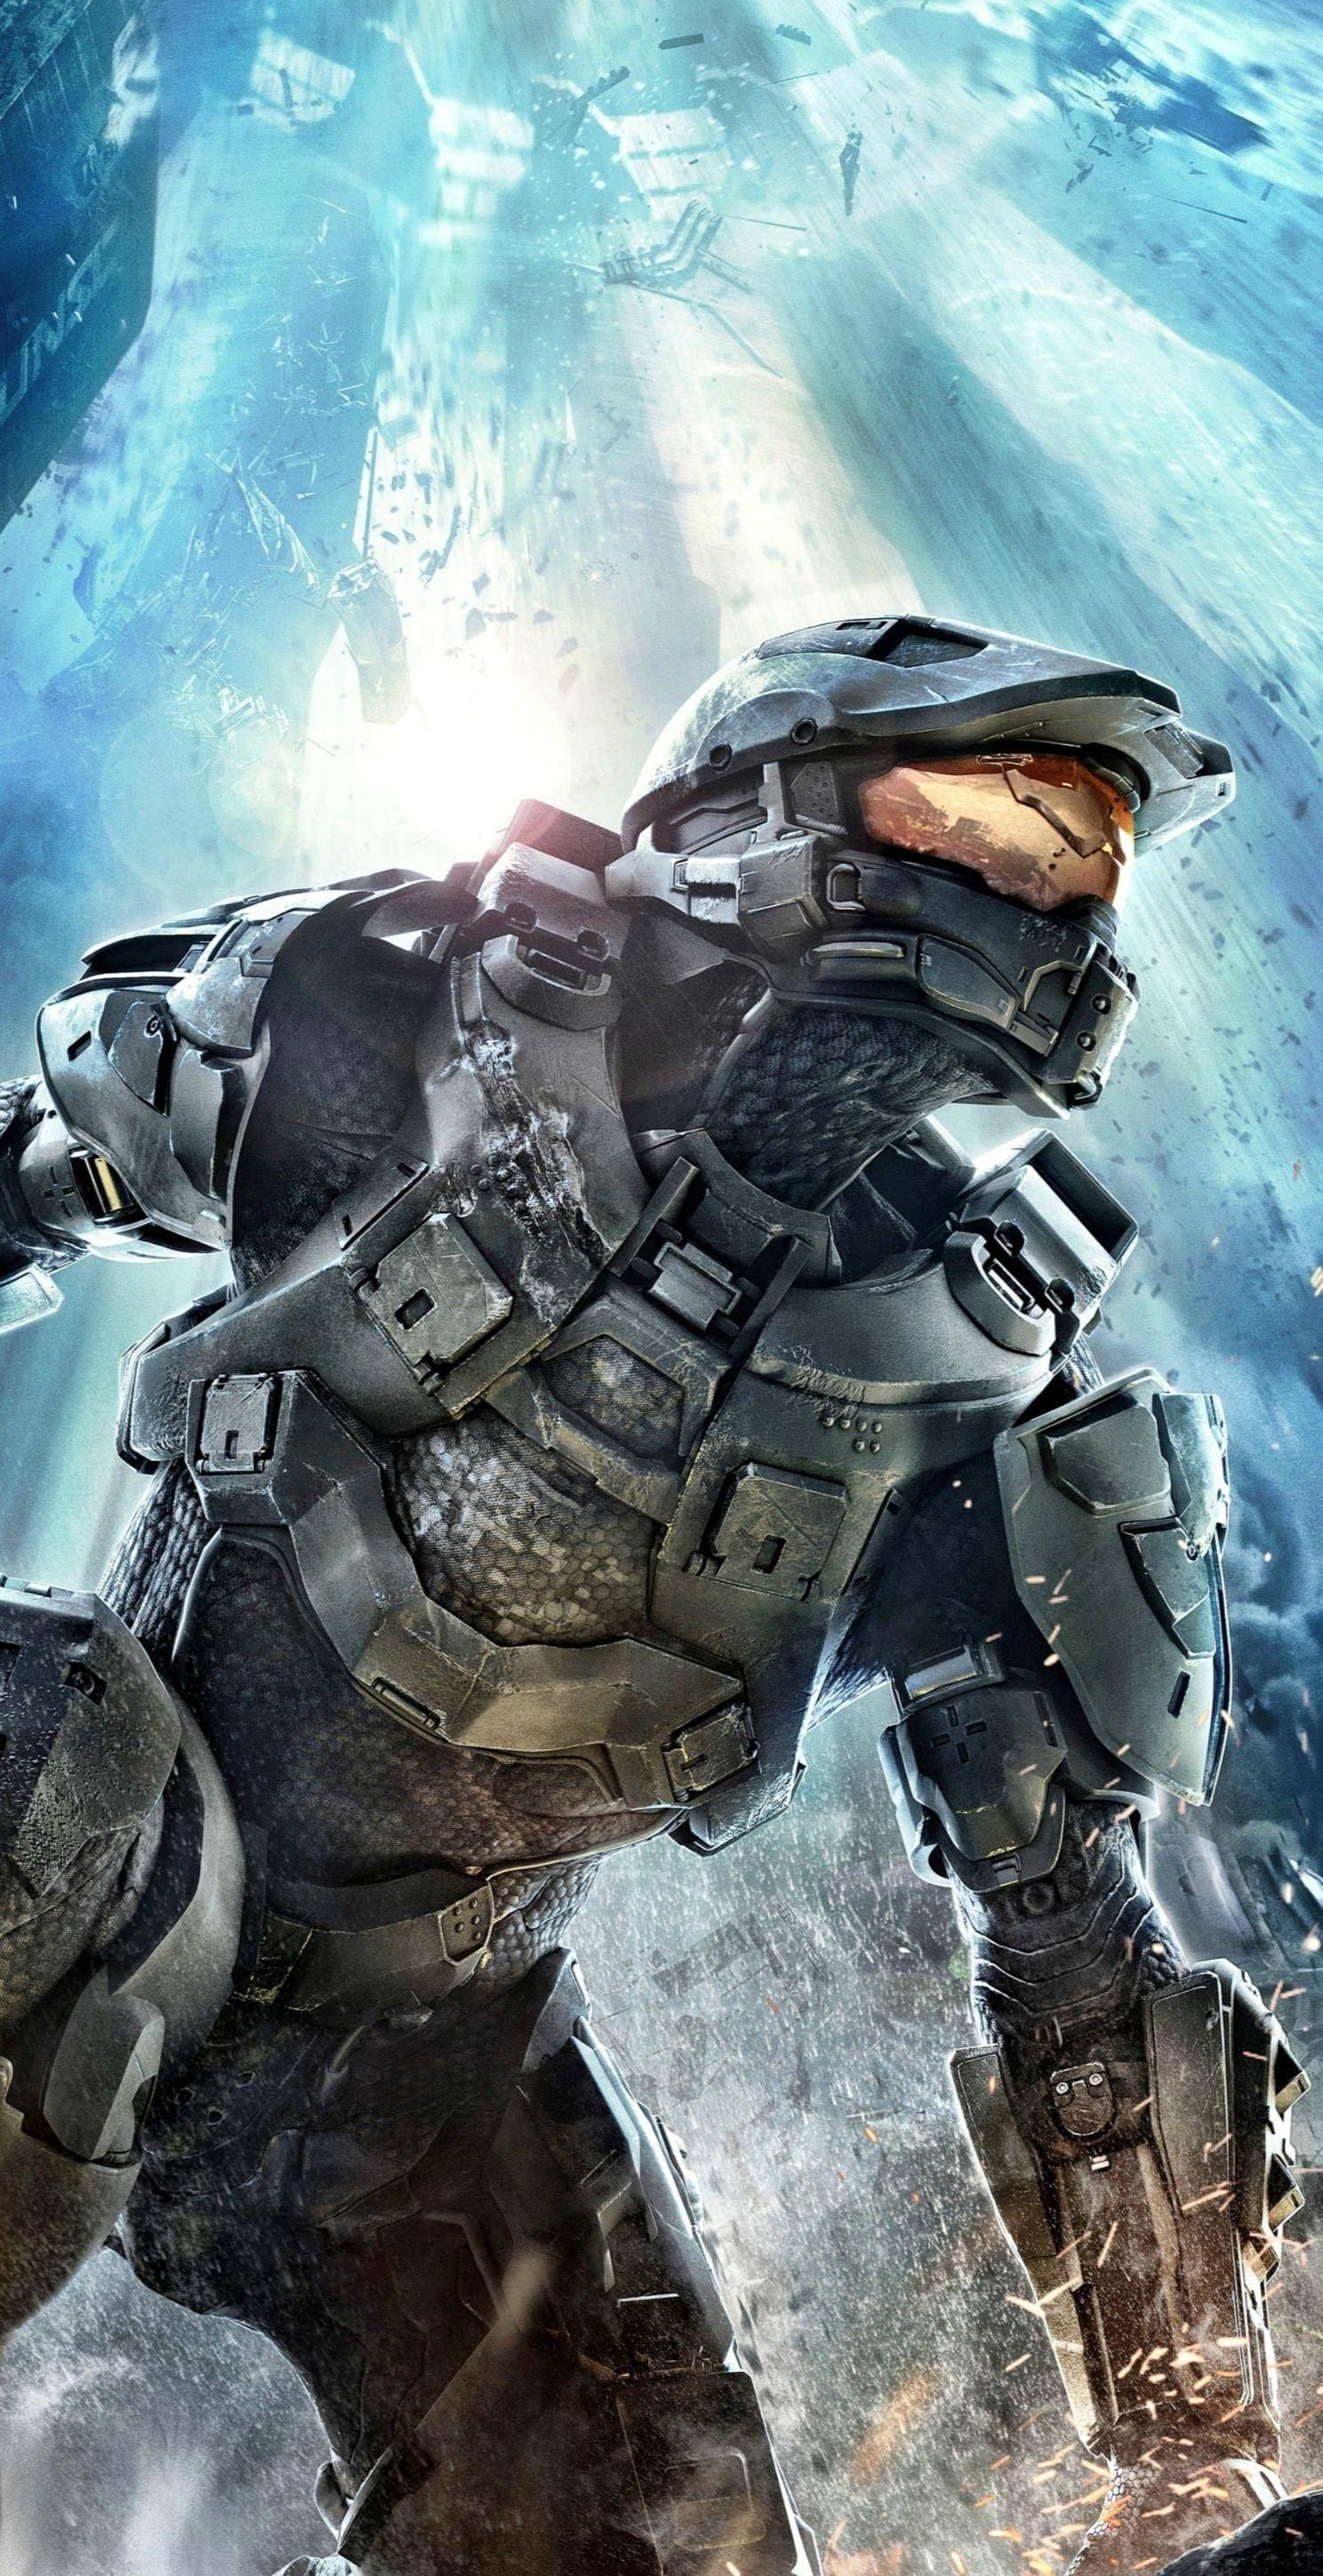 Halo 4 Wallpapers for iPhone 5